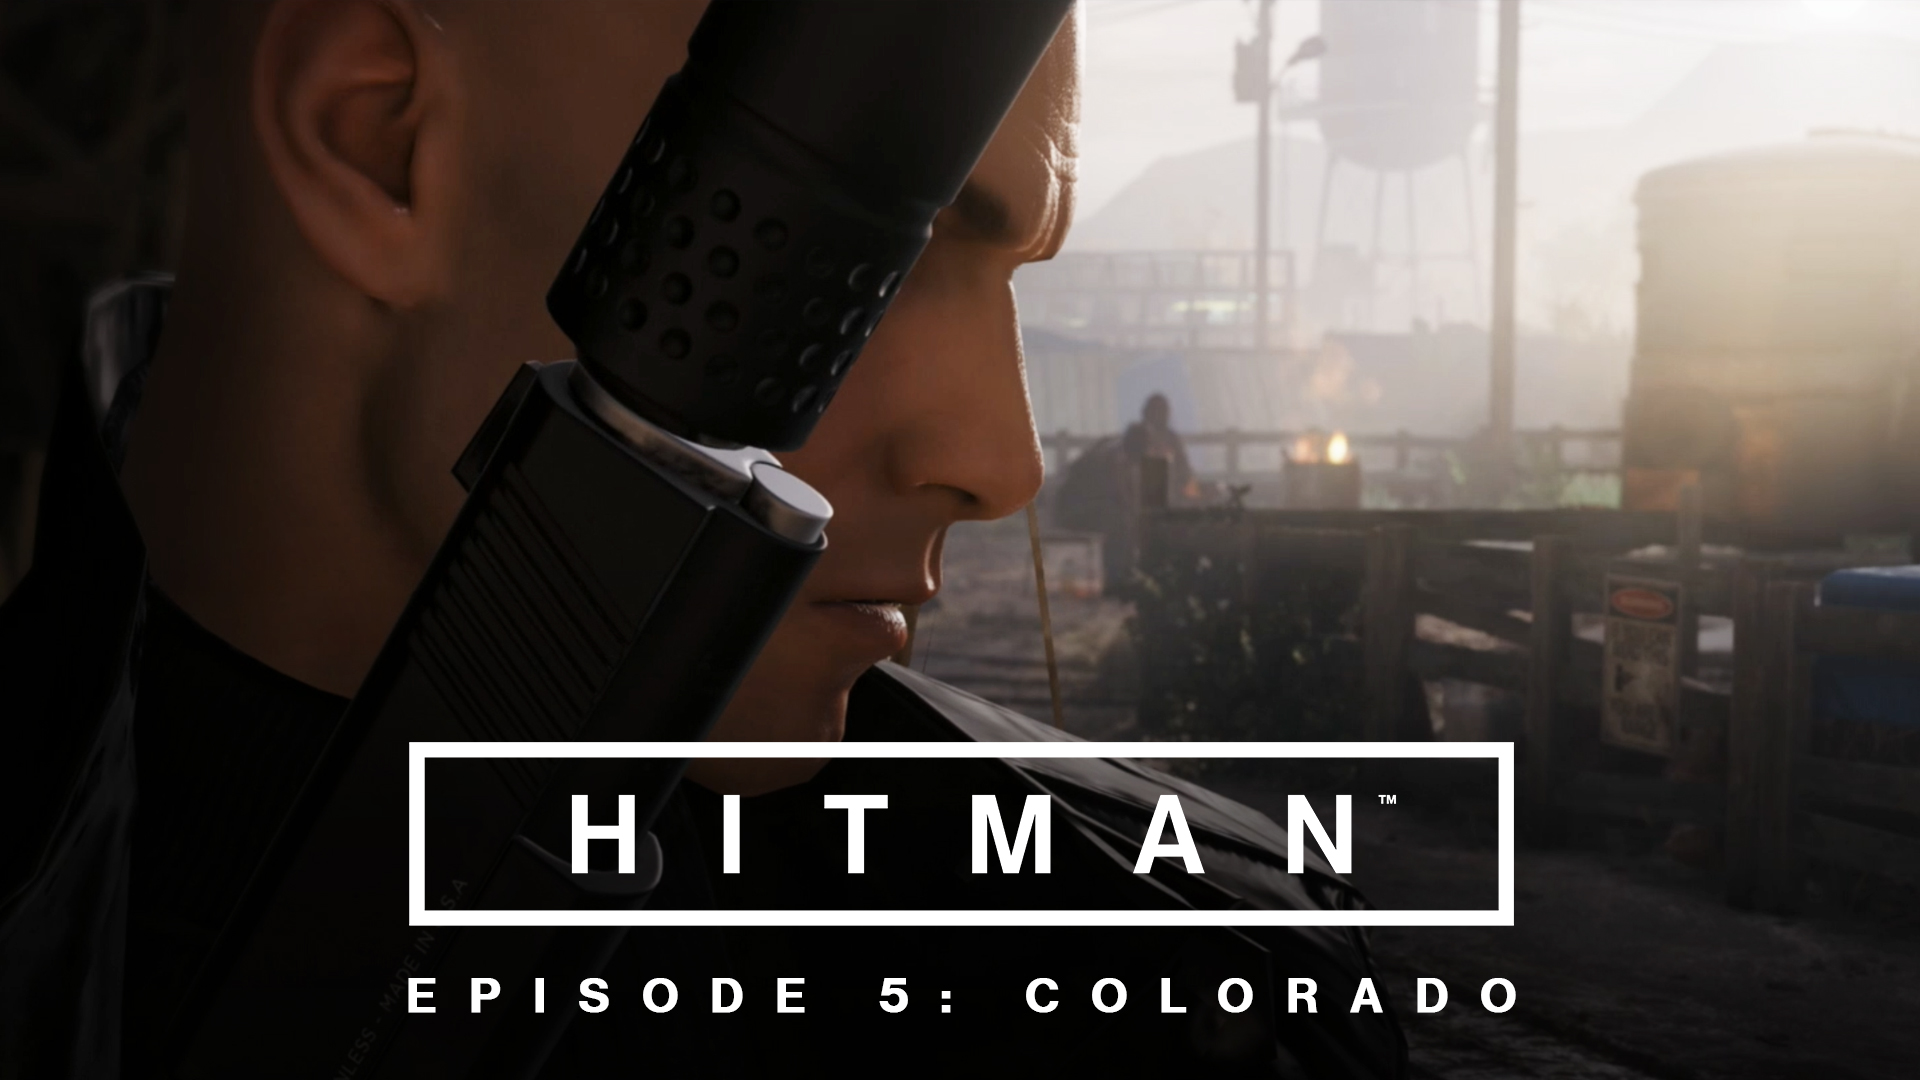 hitman-episode-5-colorado-launch-trailer_thumbnail_1920x1080